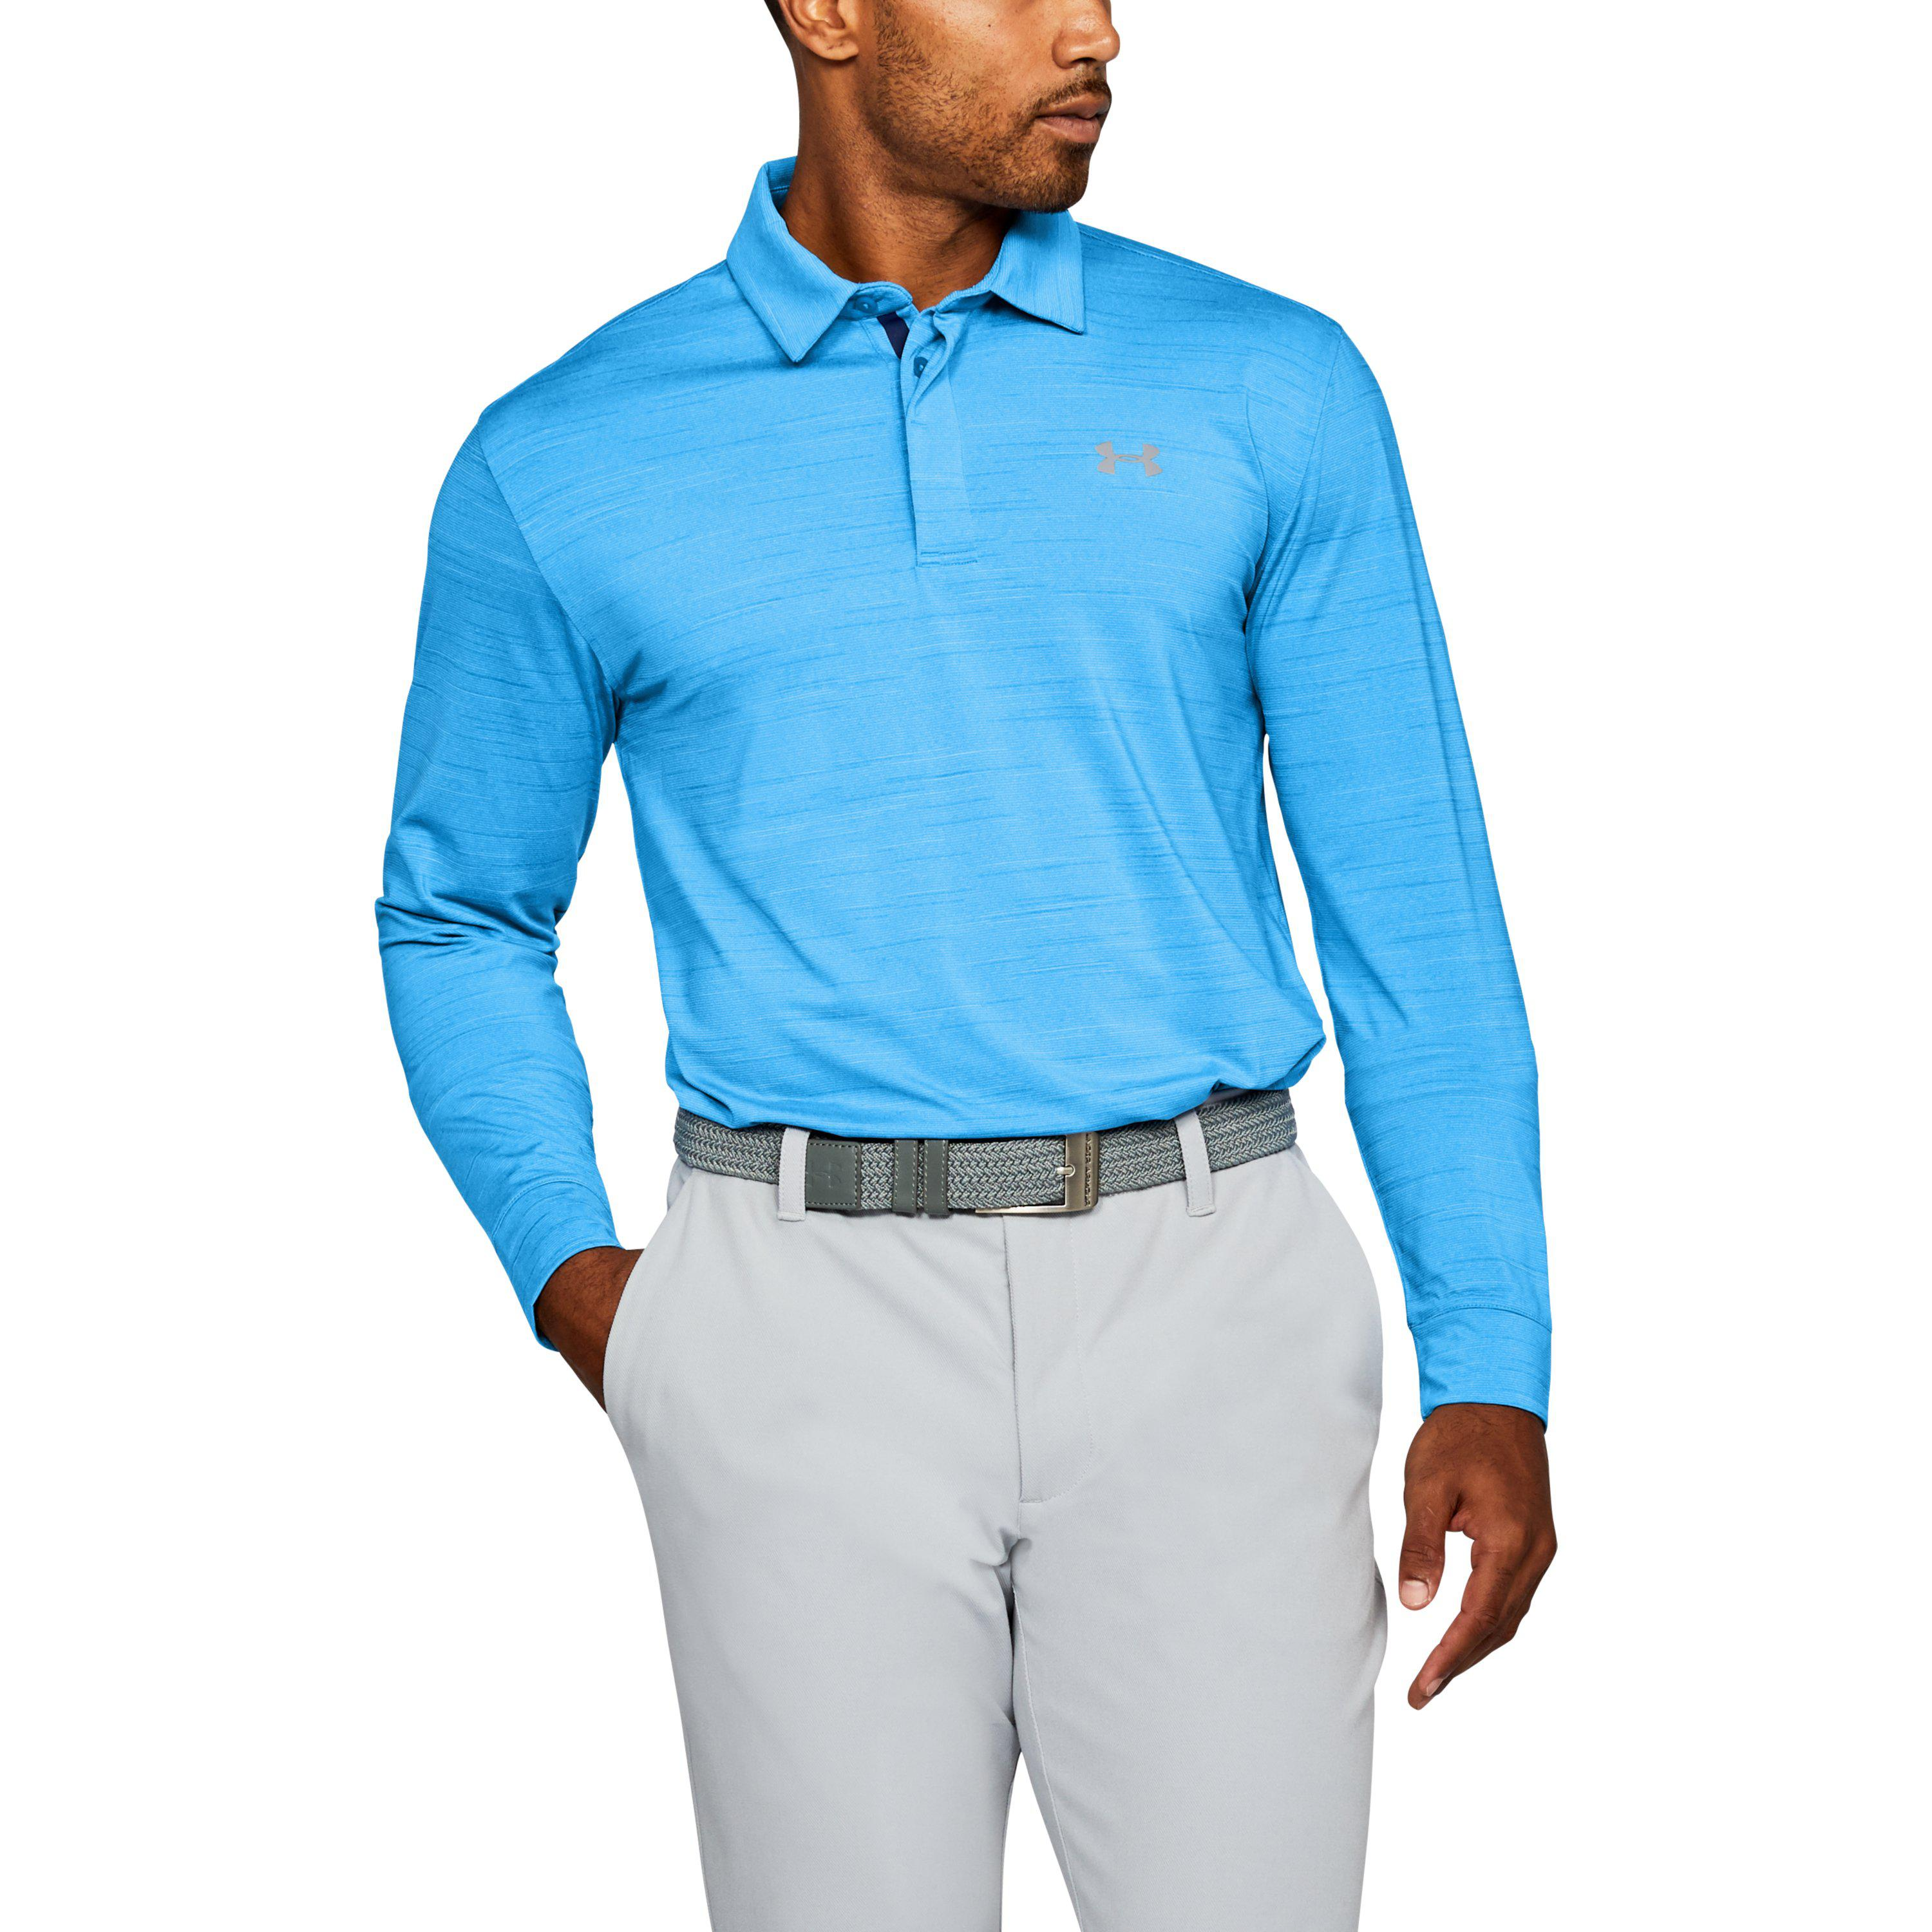 8c5be45eb0 Lyst - Under Armour Men's Ua Playoff Long Sleeve Polo in Blue for Men